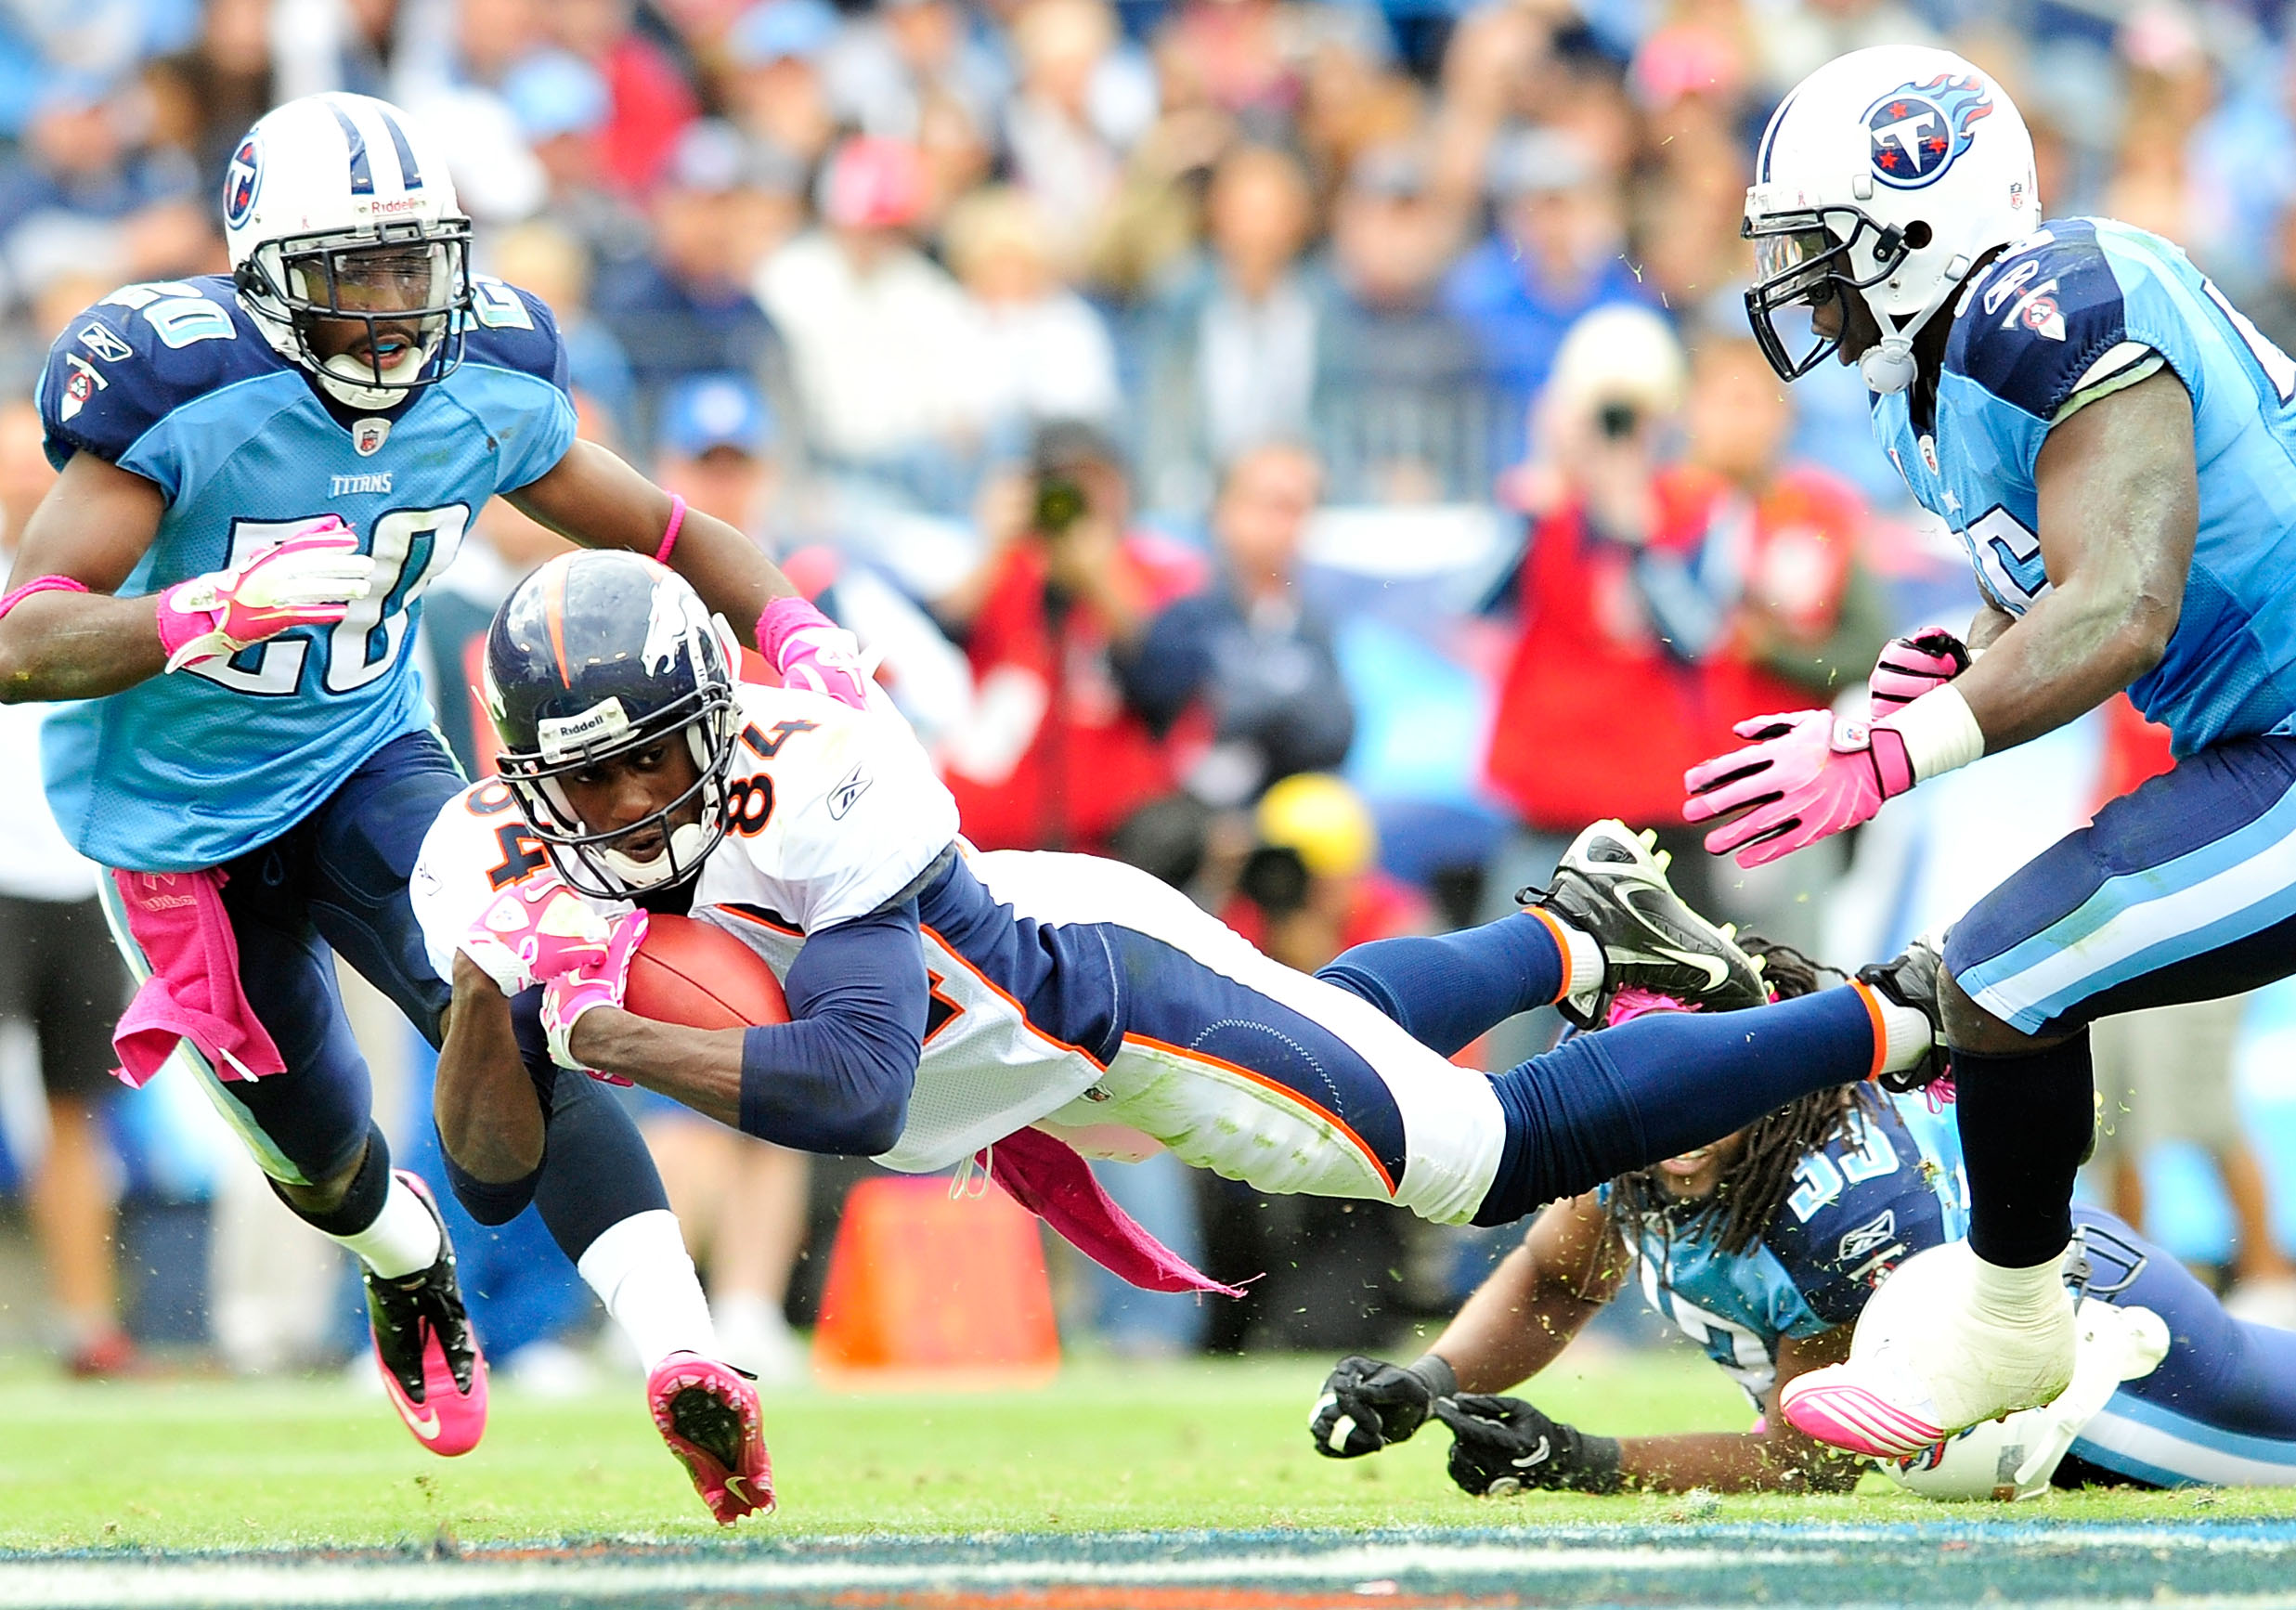 NASHVILLE, TN - OCTOBER 03:  Brandon Lloyd #84  of the Denver Broncos dives for extra yardage against the Tennessee Titans at LP Field on October 3, 2010 in Nashville, Tennessee. Denver won 26-20.  (Photo by Grant Halverson/Getty Images)